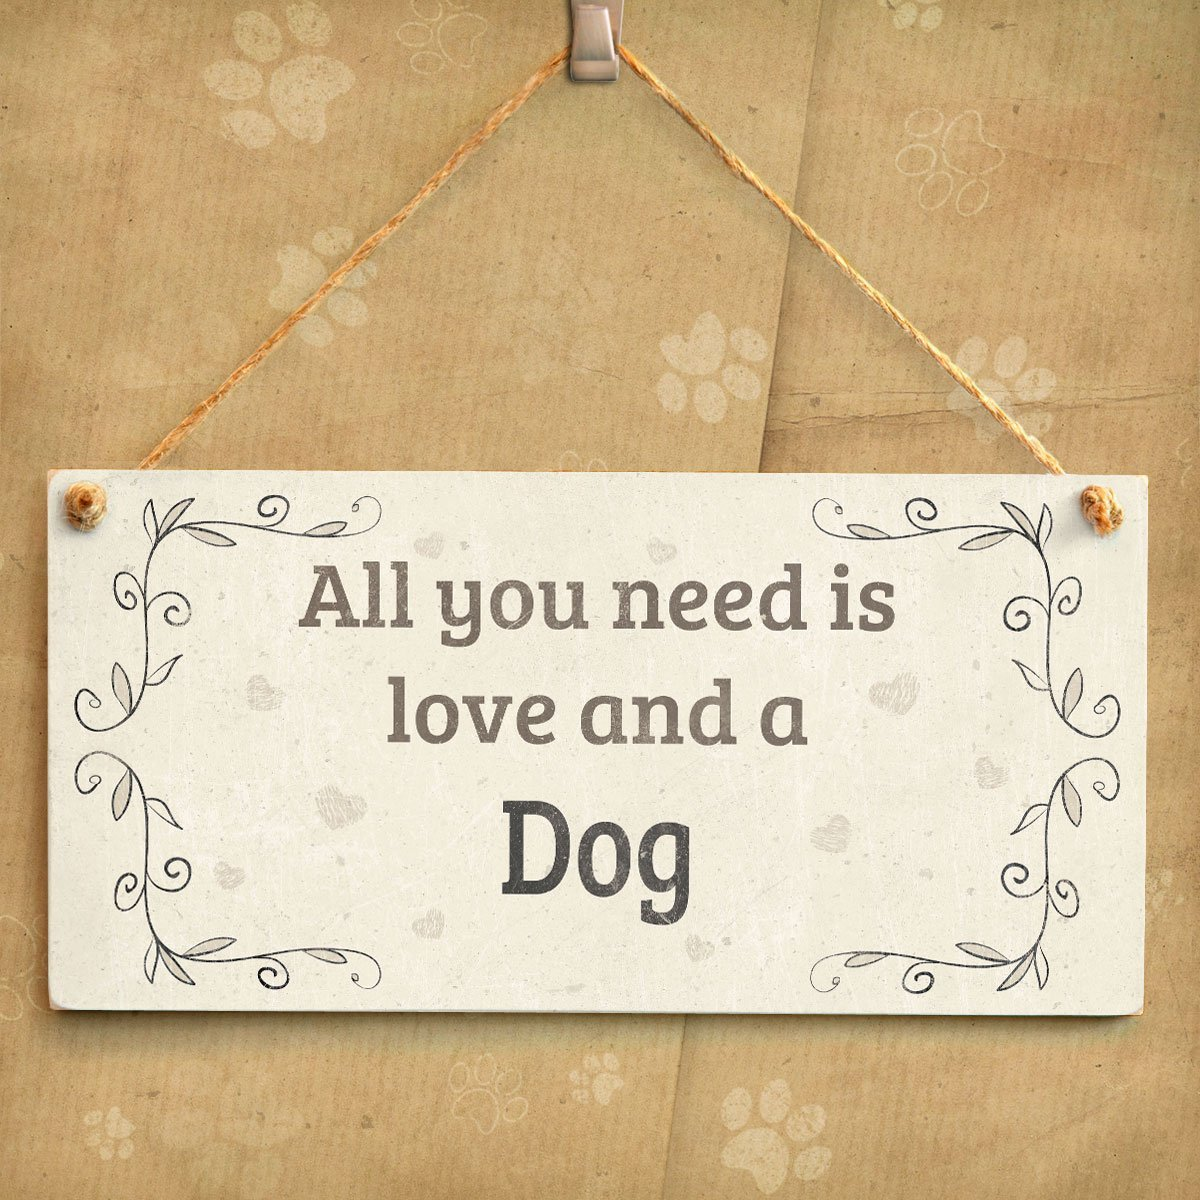 Meijiafei All You Need is Love and Dogs Lovely Home Accessory Gift Sign for Dog Owners 10x5